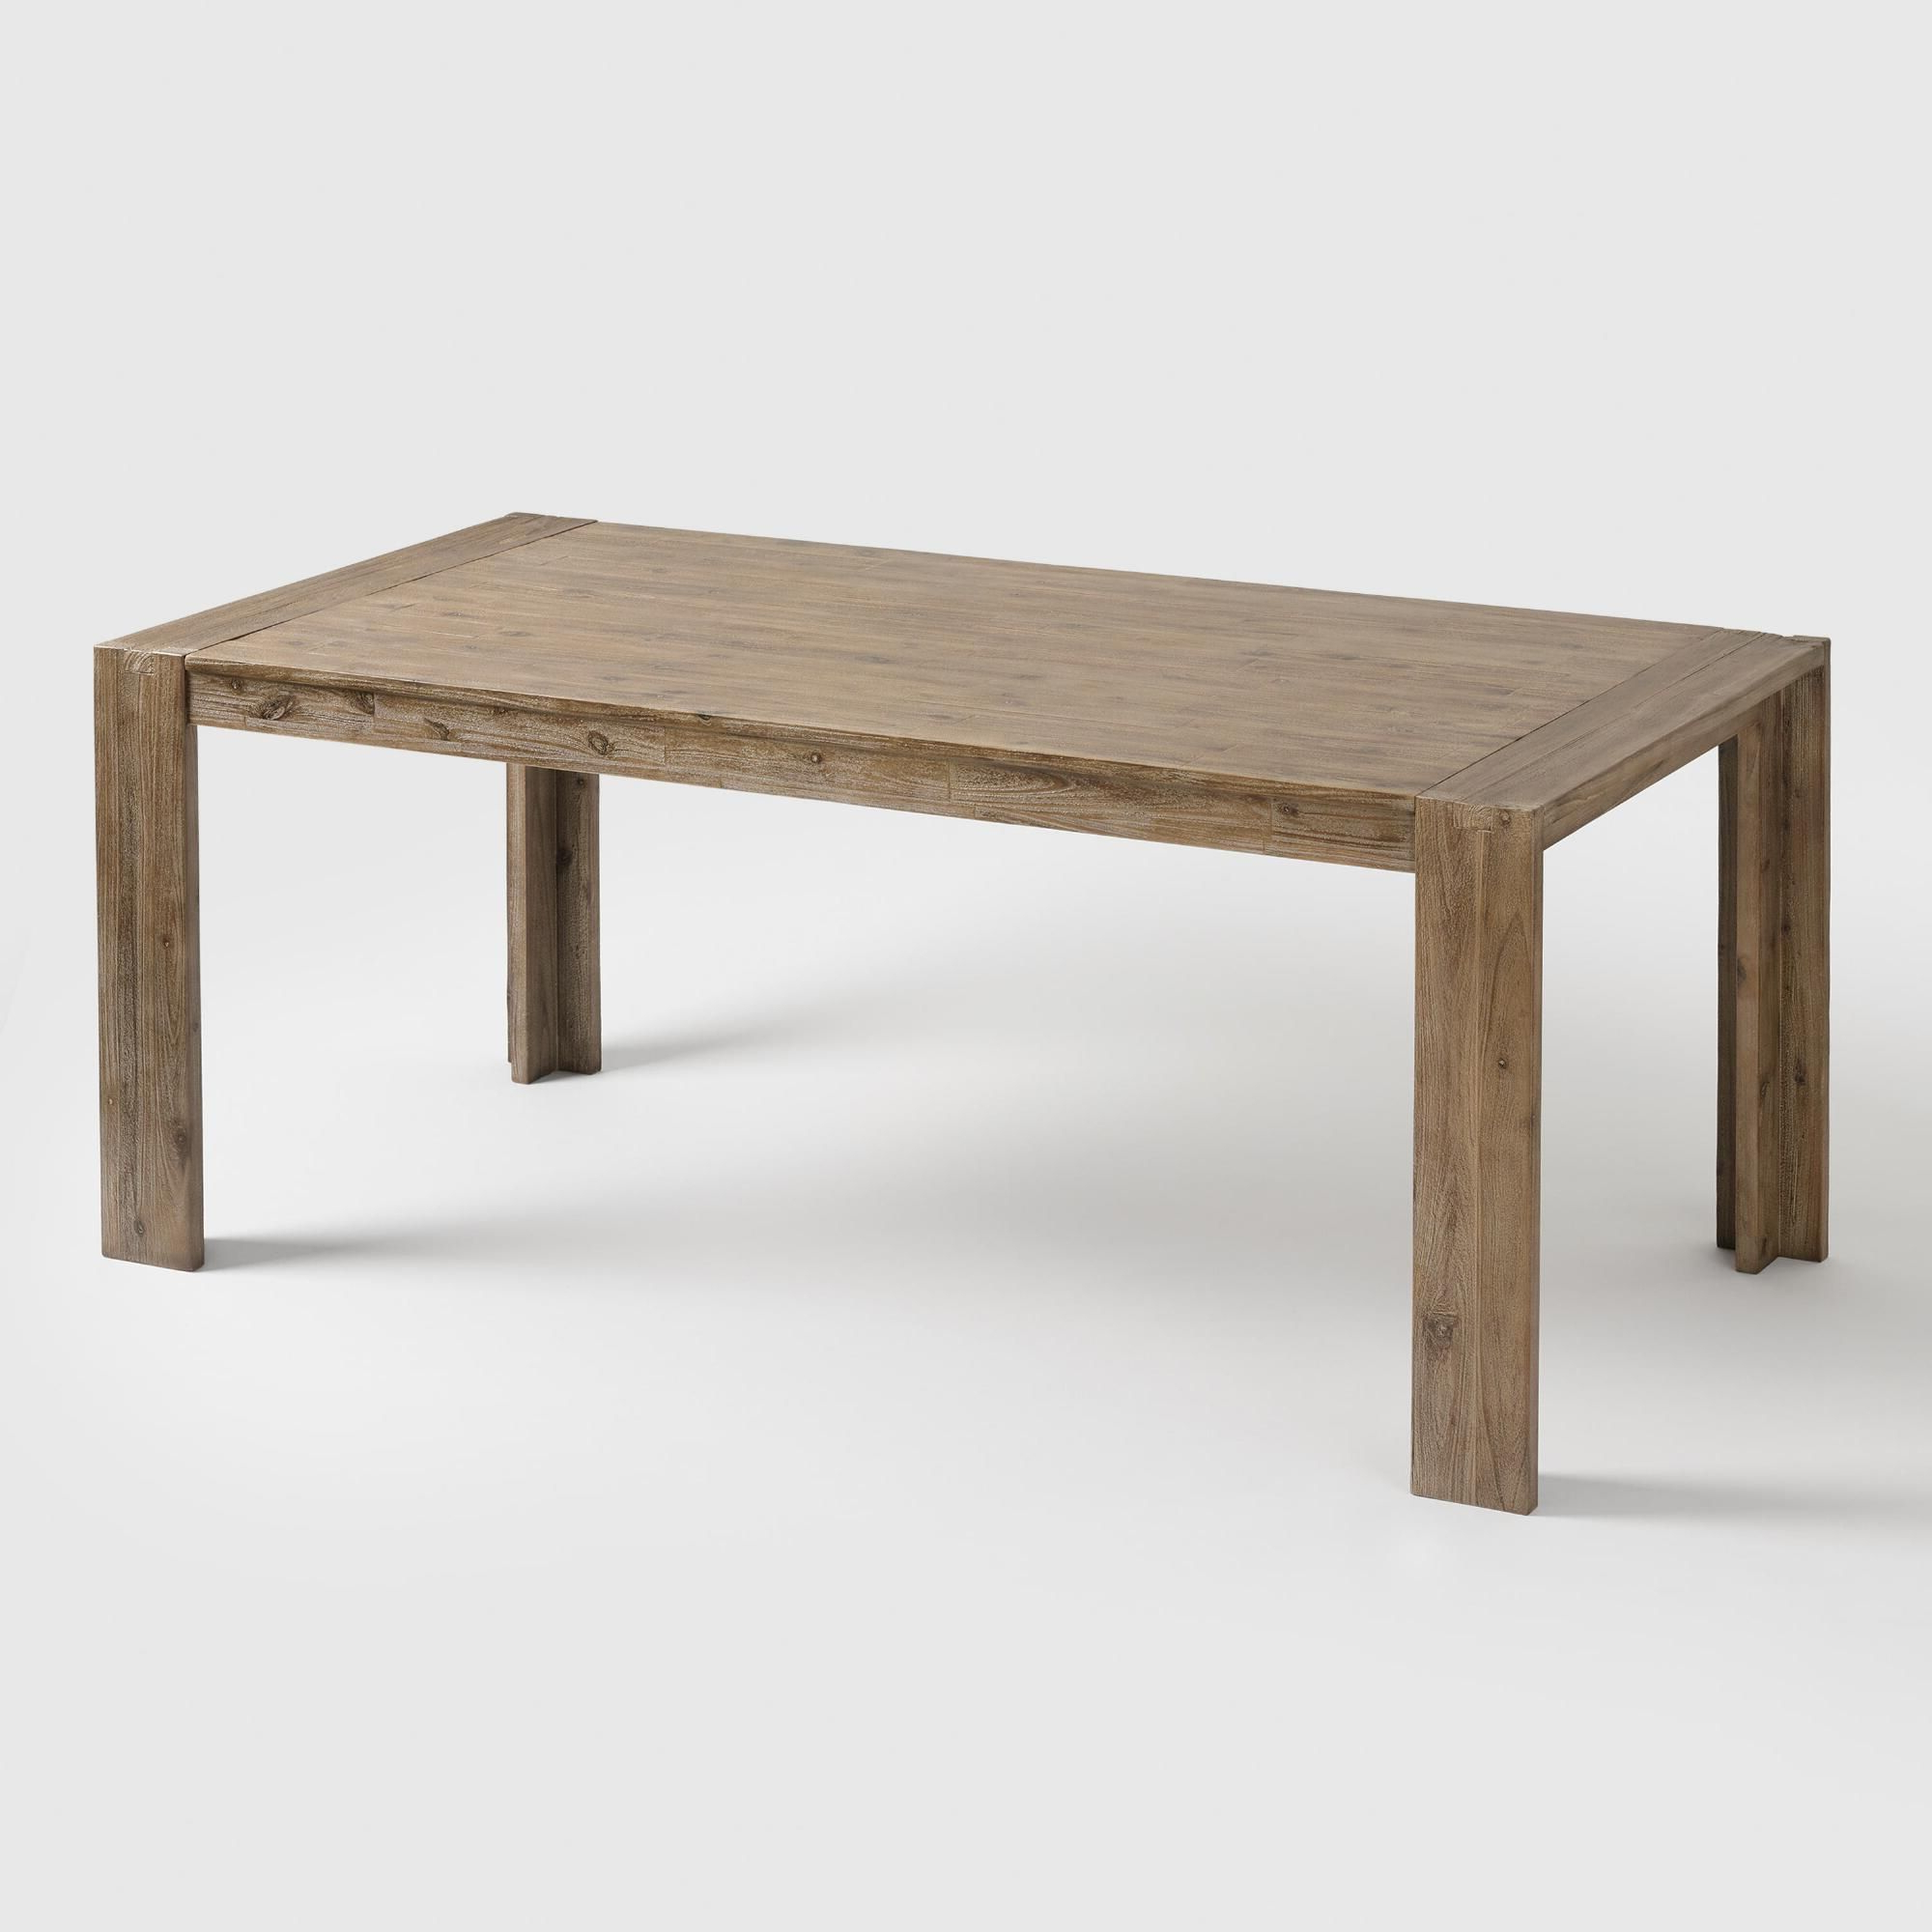 Medium Dining Tables Intended For Latest Natural Wood Finn Dining Table – Mediumworld Market In (View 8 of 30)